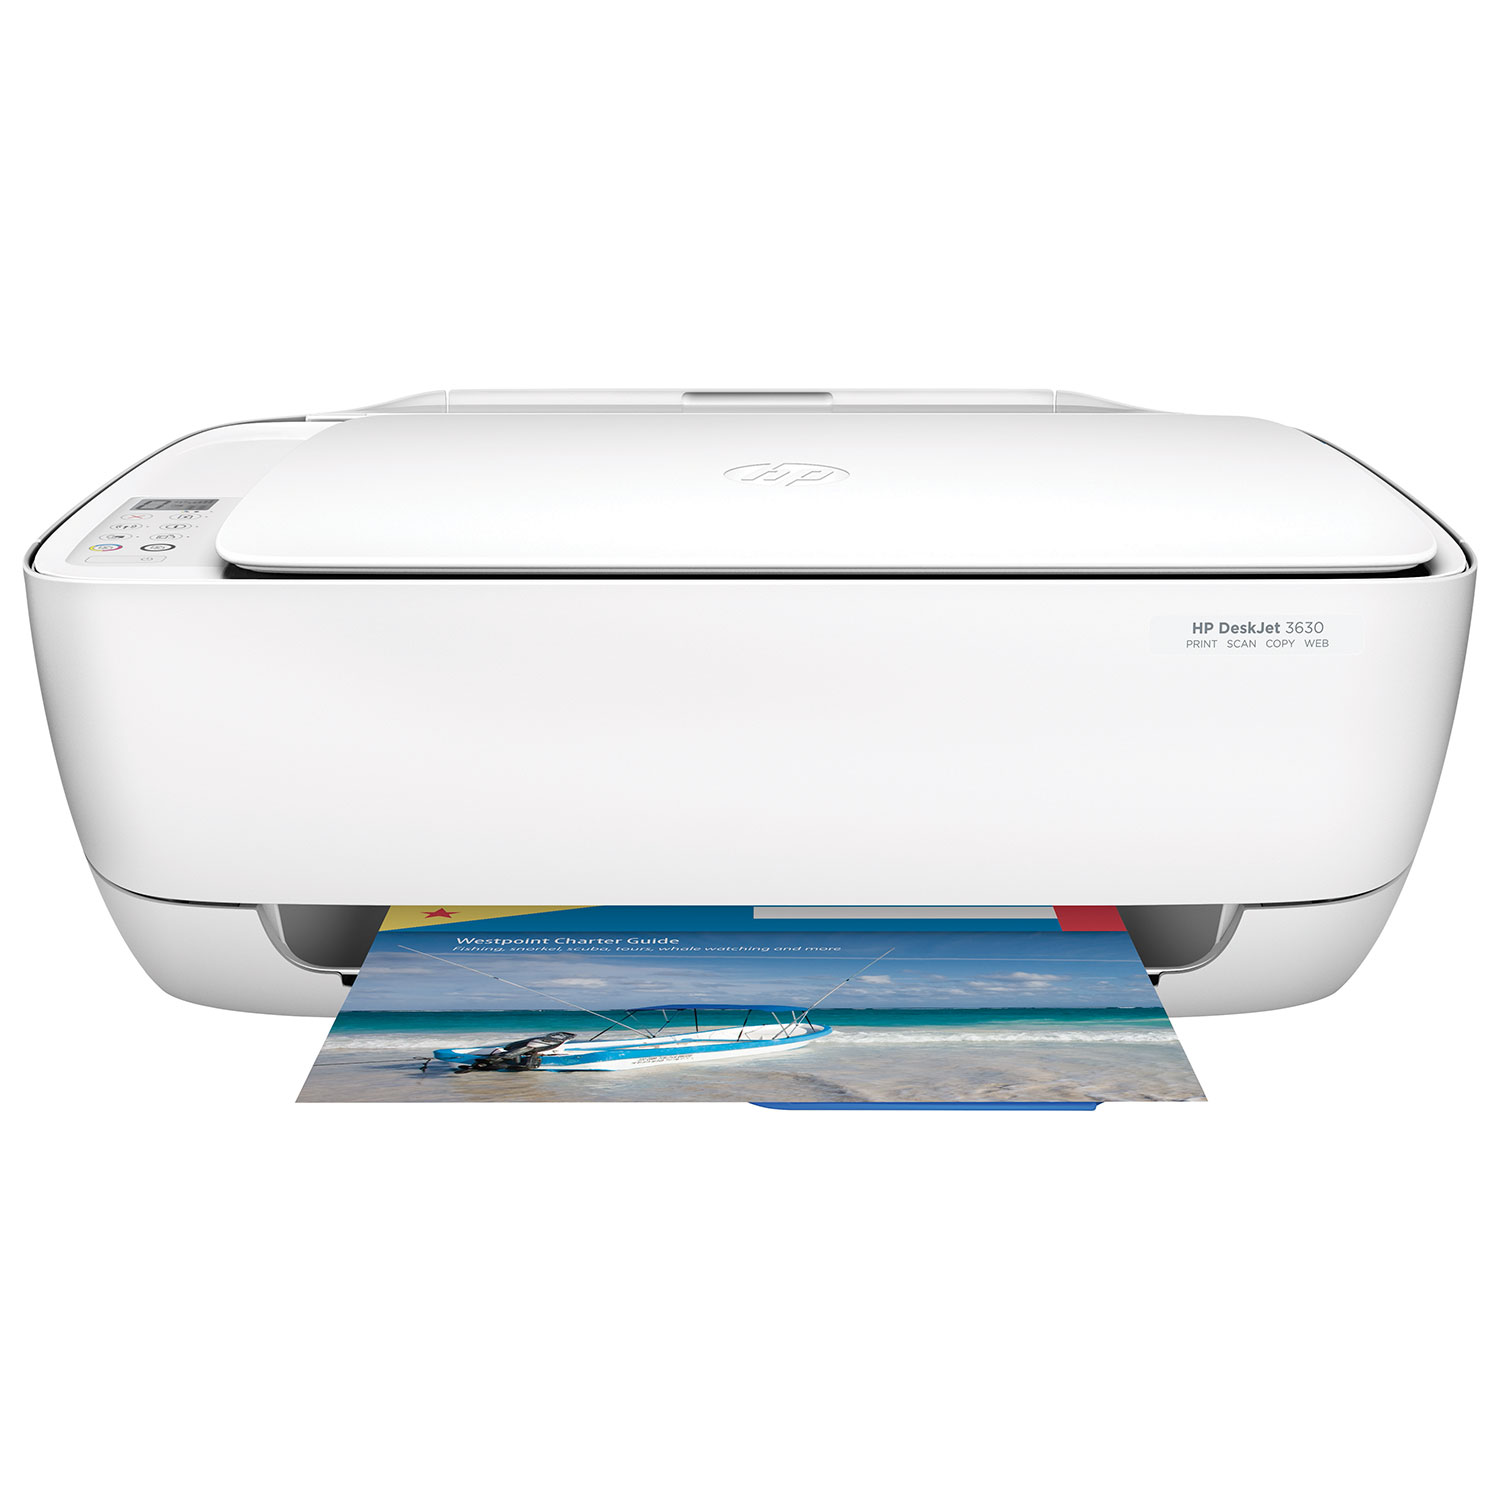 Hp Deskjet 3630 Wireless Colour Allinone Inkjet Printer